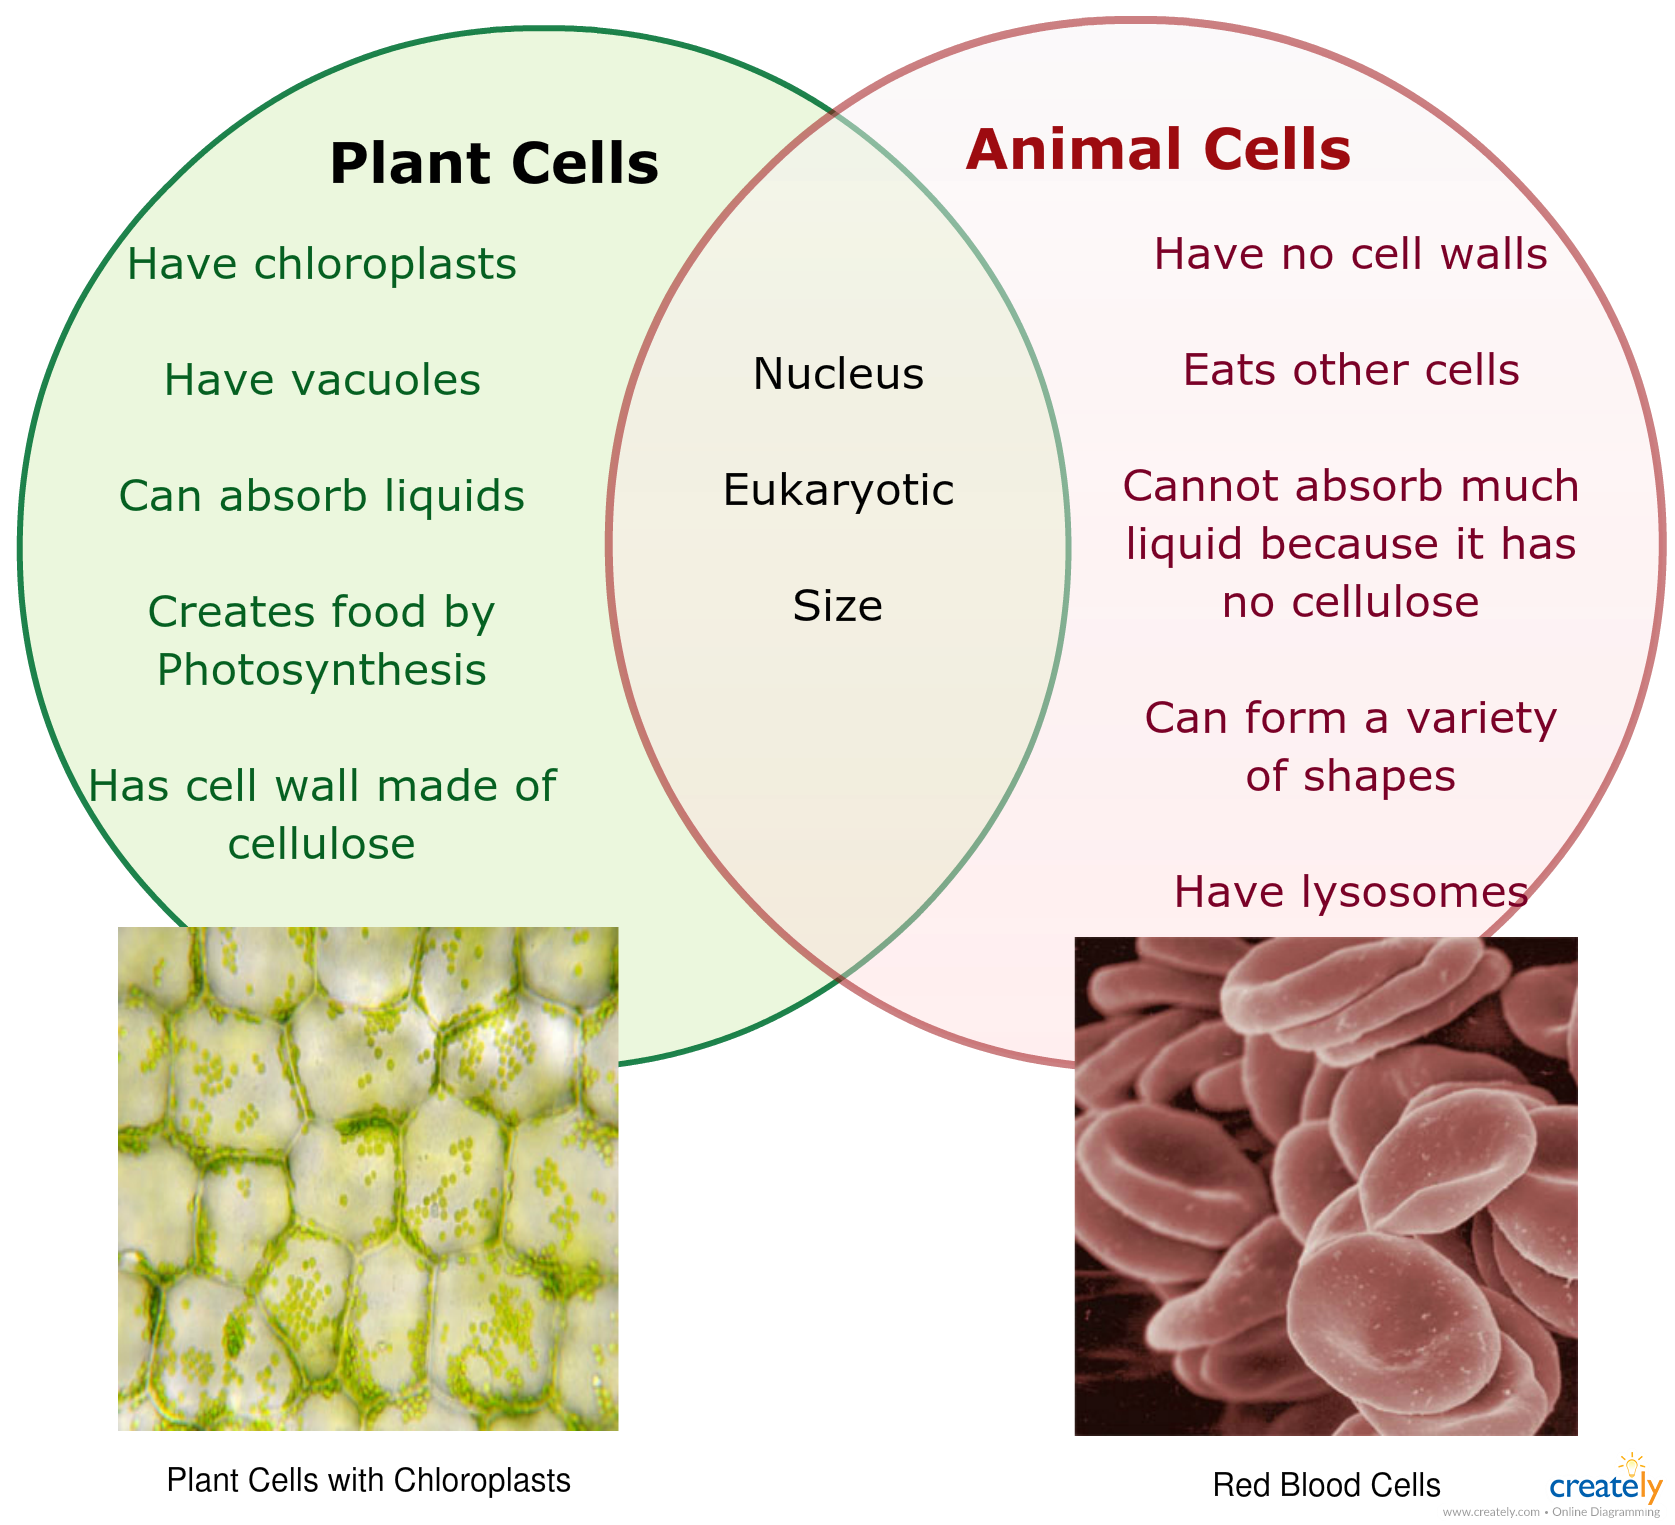 Animal cell venn diagram electrical wiring diagram plant vs animal cells venn diagram for educational purposes venn rh pinterest com plants vs animal cells venn diagram plant animal cell venn diagram ccuart Image collections